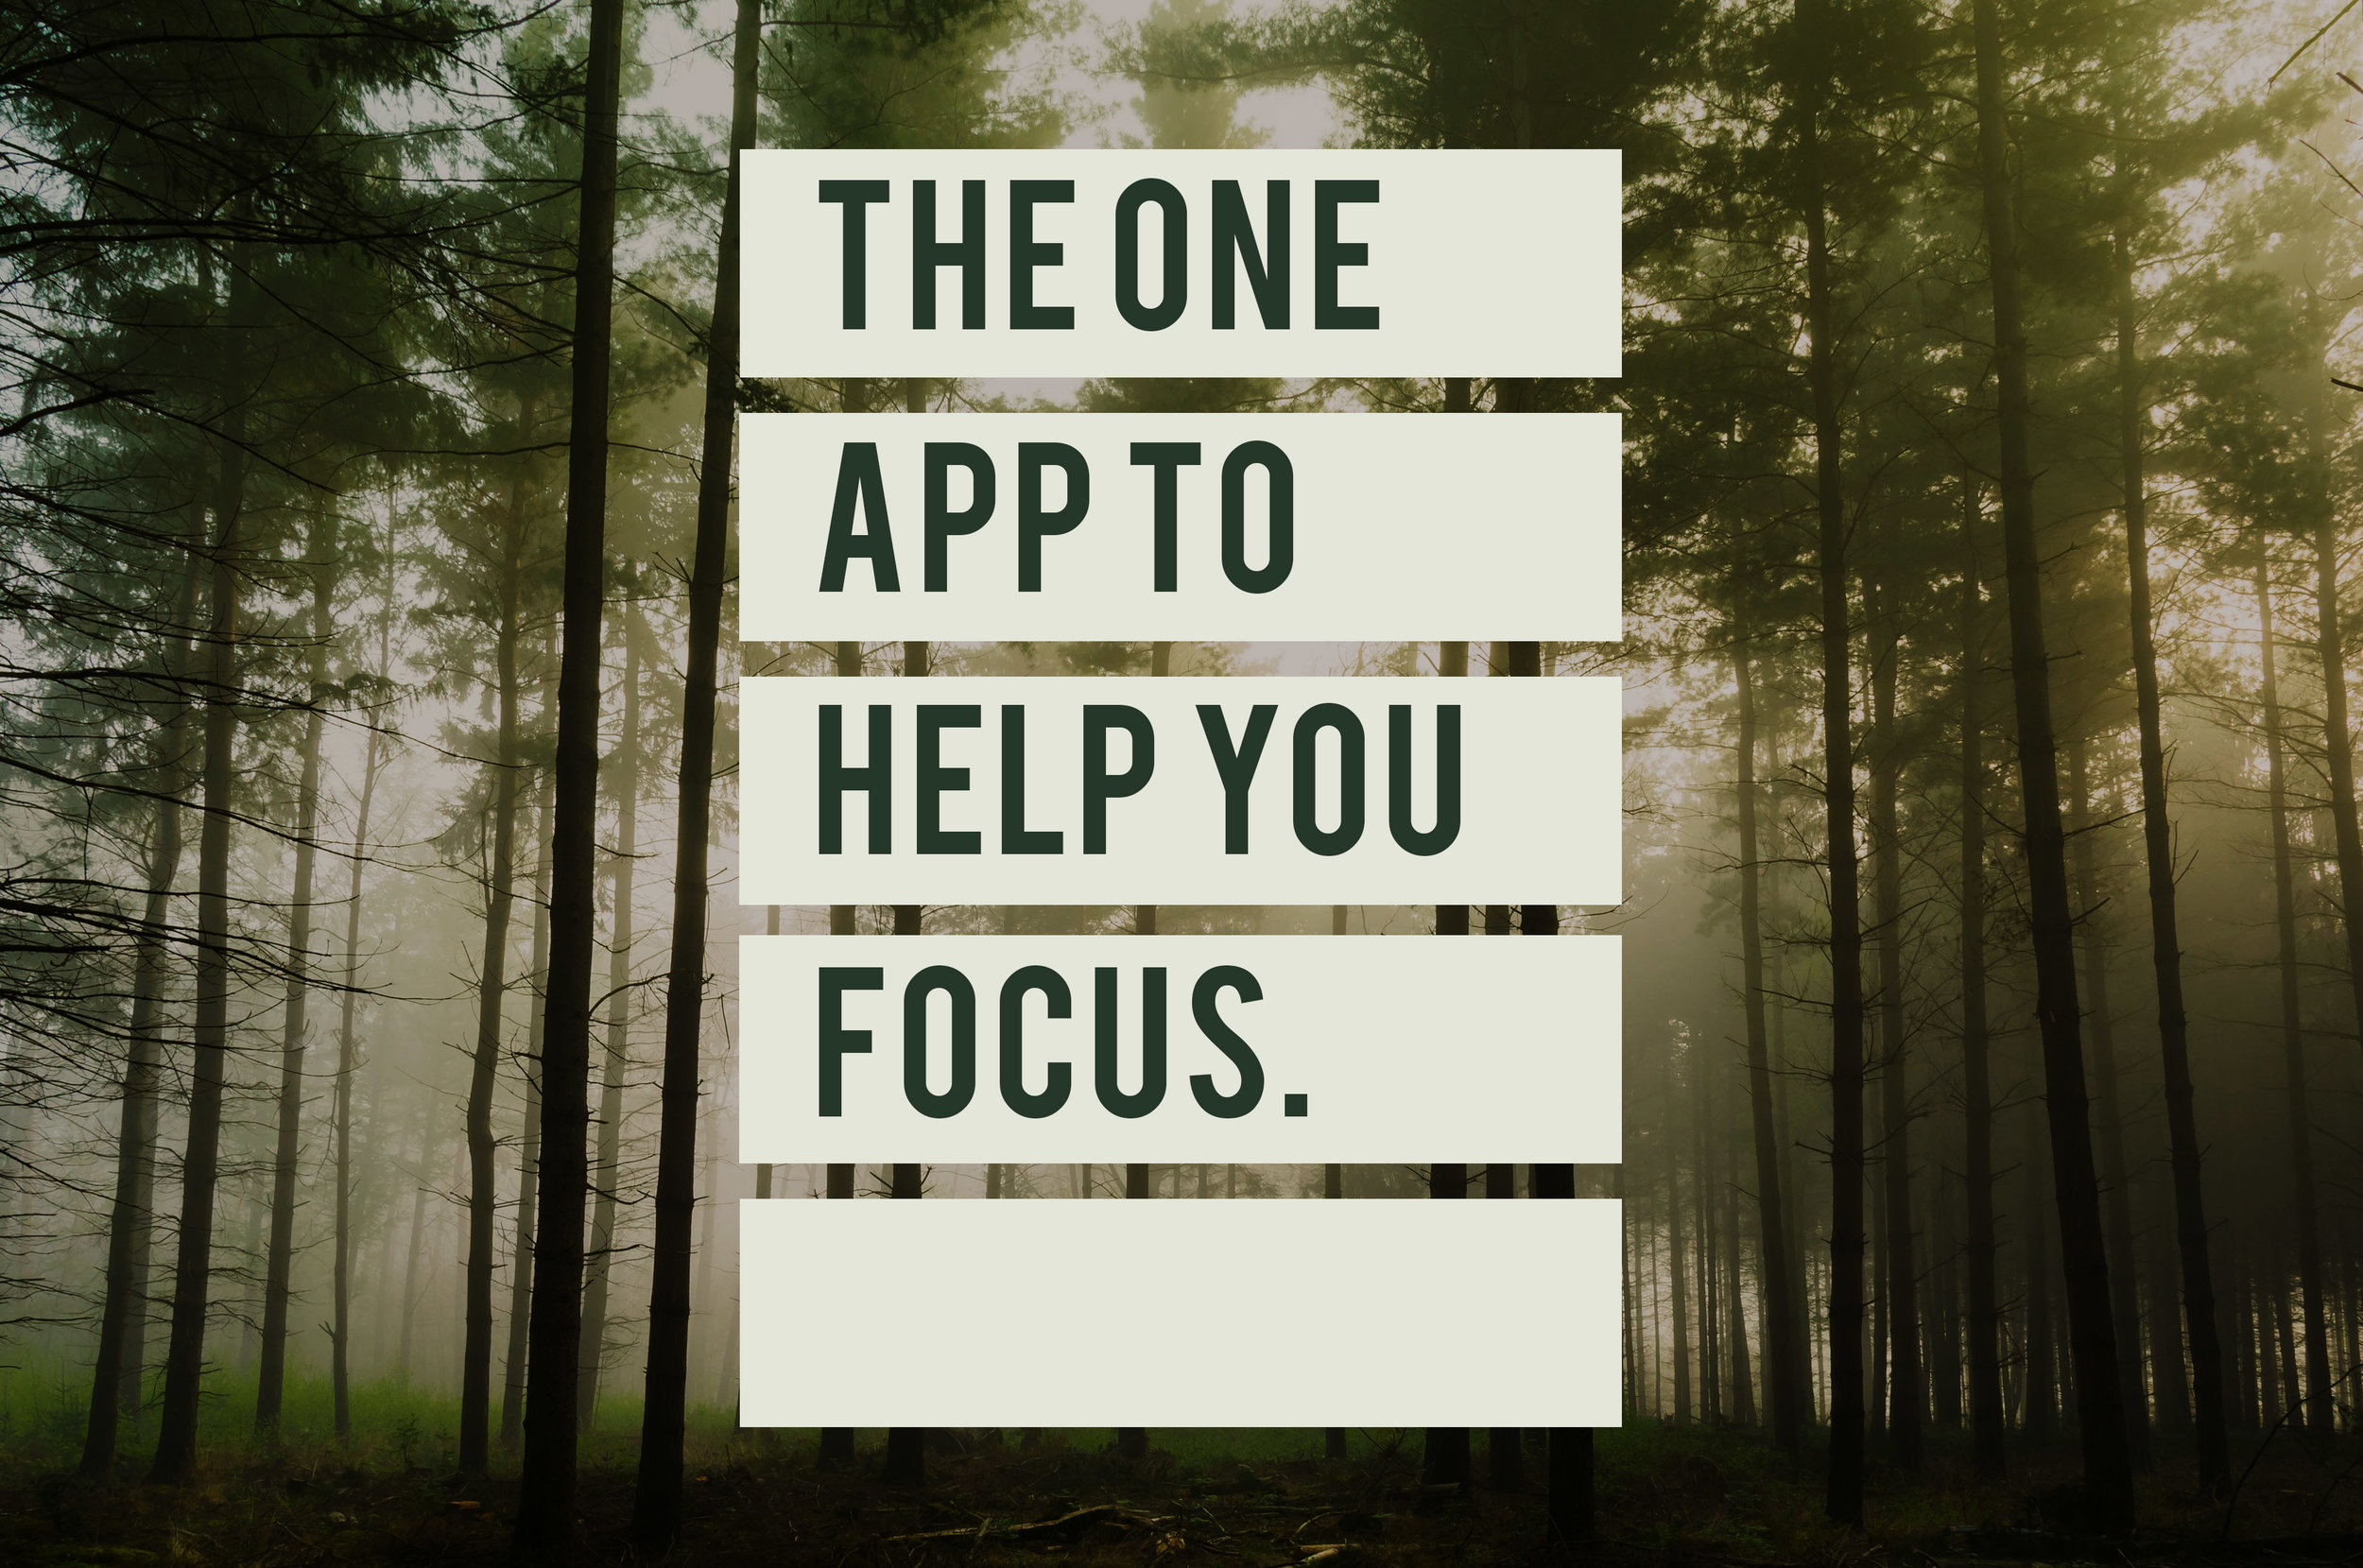 The one app to help you focus.jpg